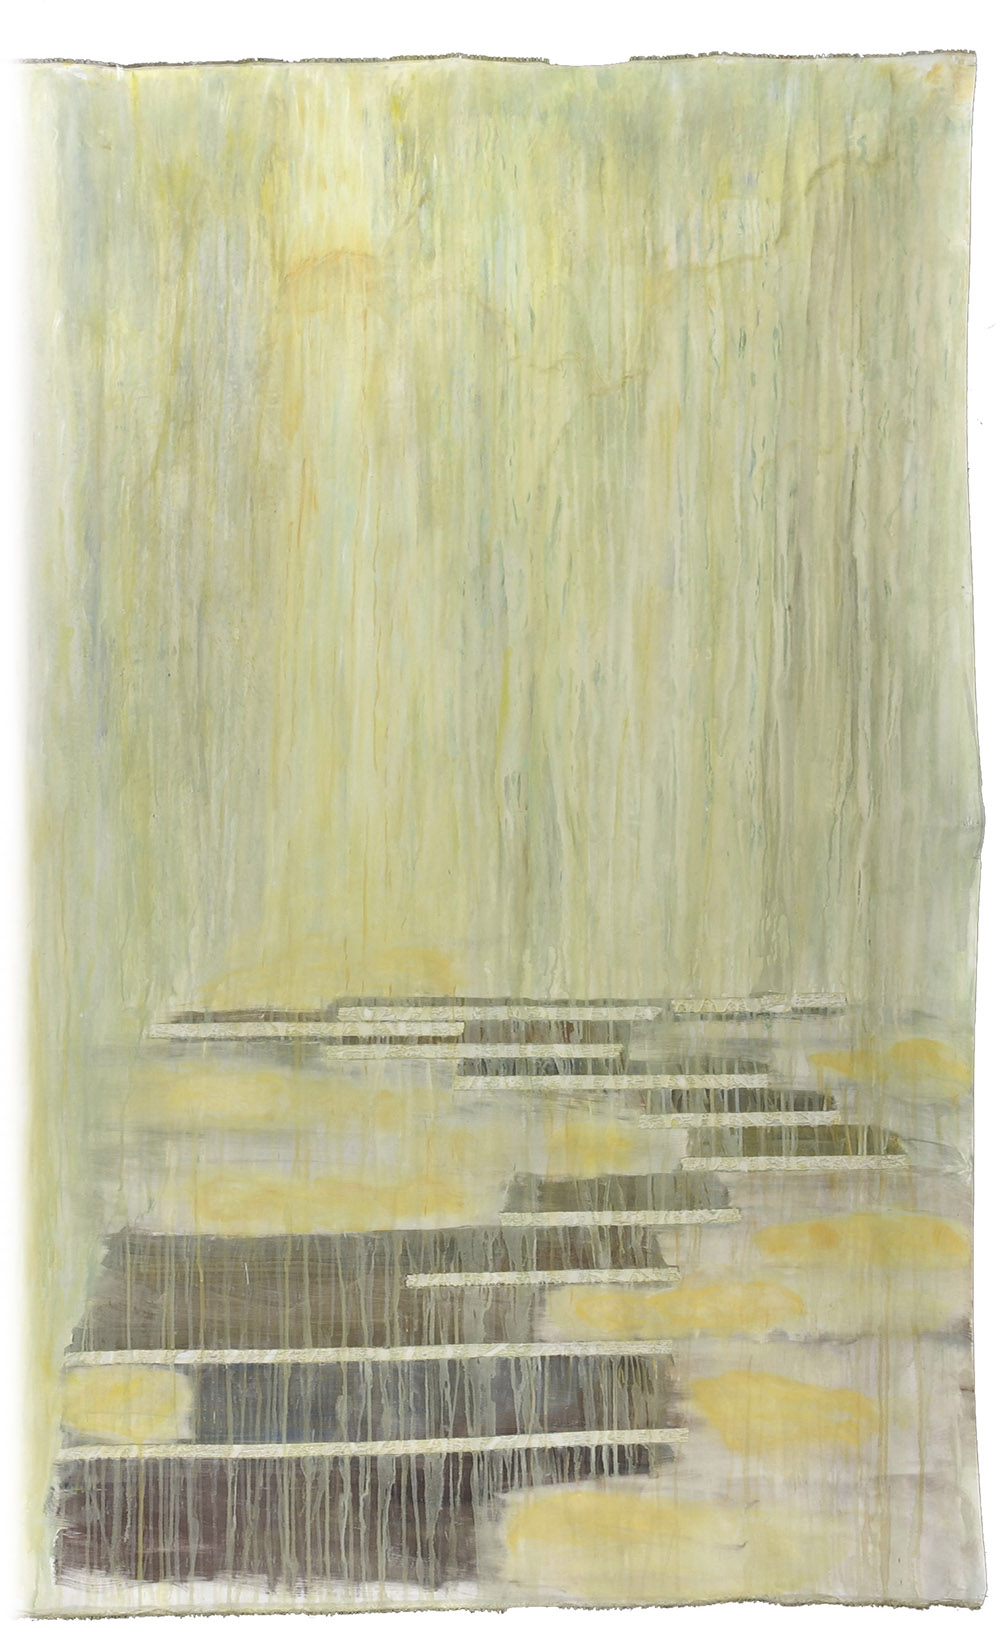 1.e-Ono-Long-and-Difficult-Road-2008.-Acrylic-on-canvas-approx.-200-x-120-cm-x.jpg